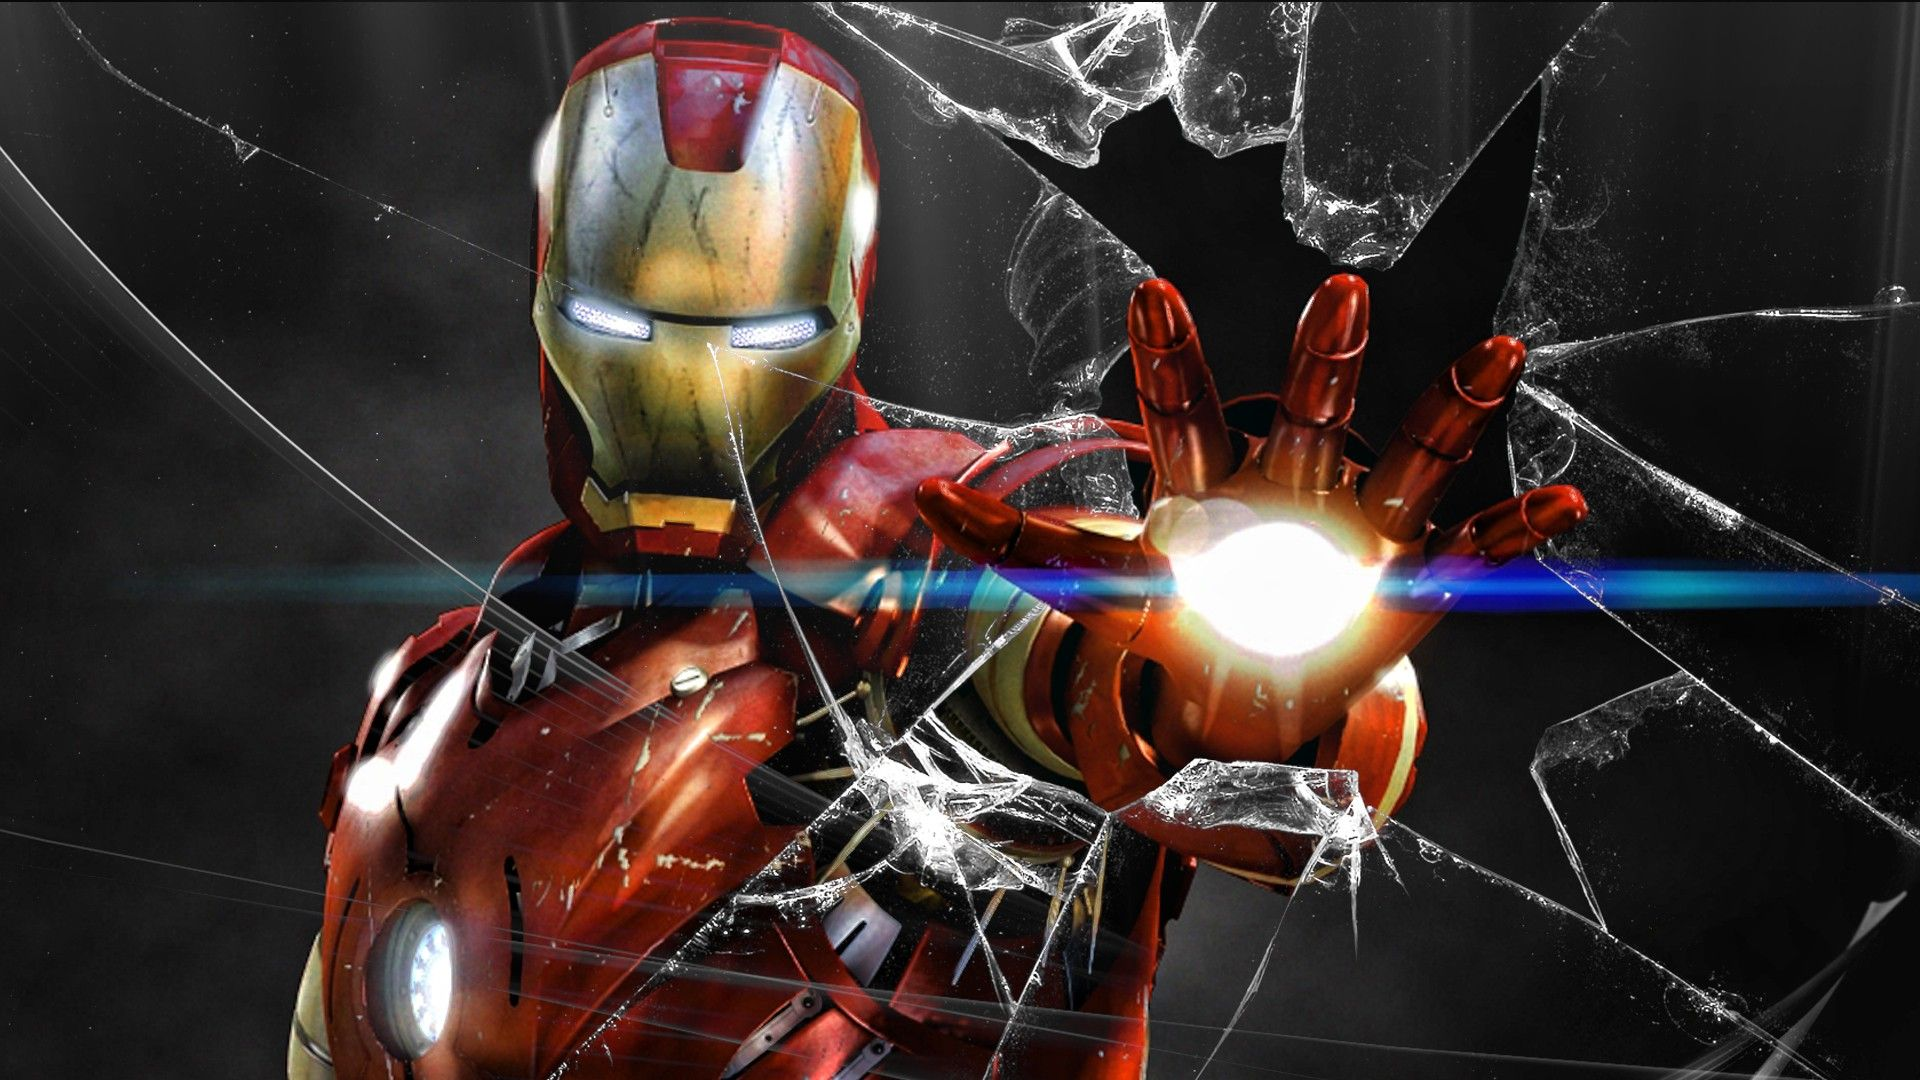 Cracked Screen Background Free Wallpapers Backgrounds Images Art Photos Iron Man Wallpaper Iron Man Hd Wallpaper Man Wallpaper